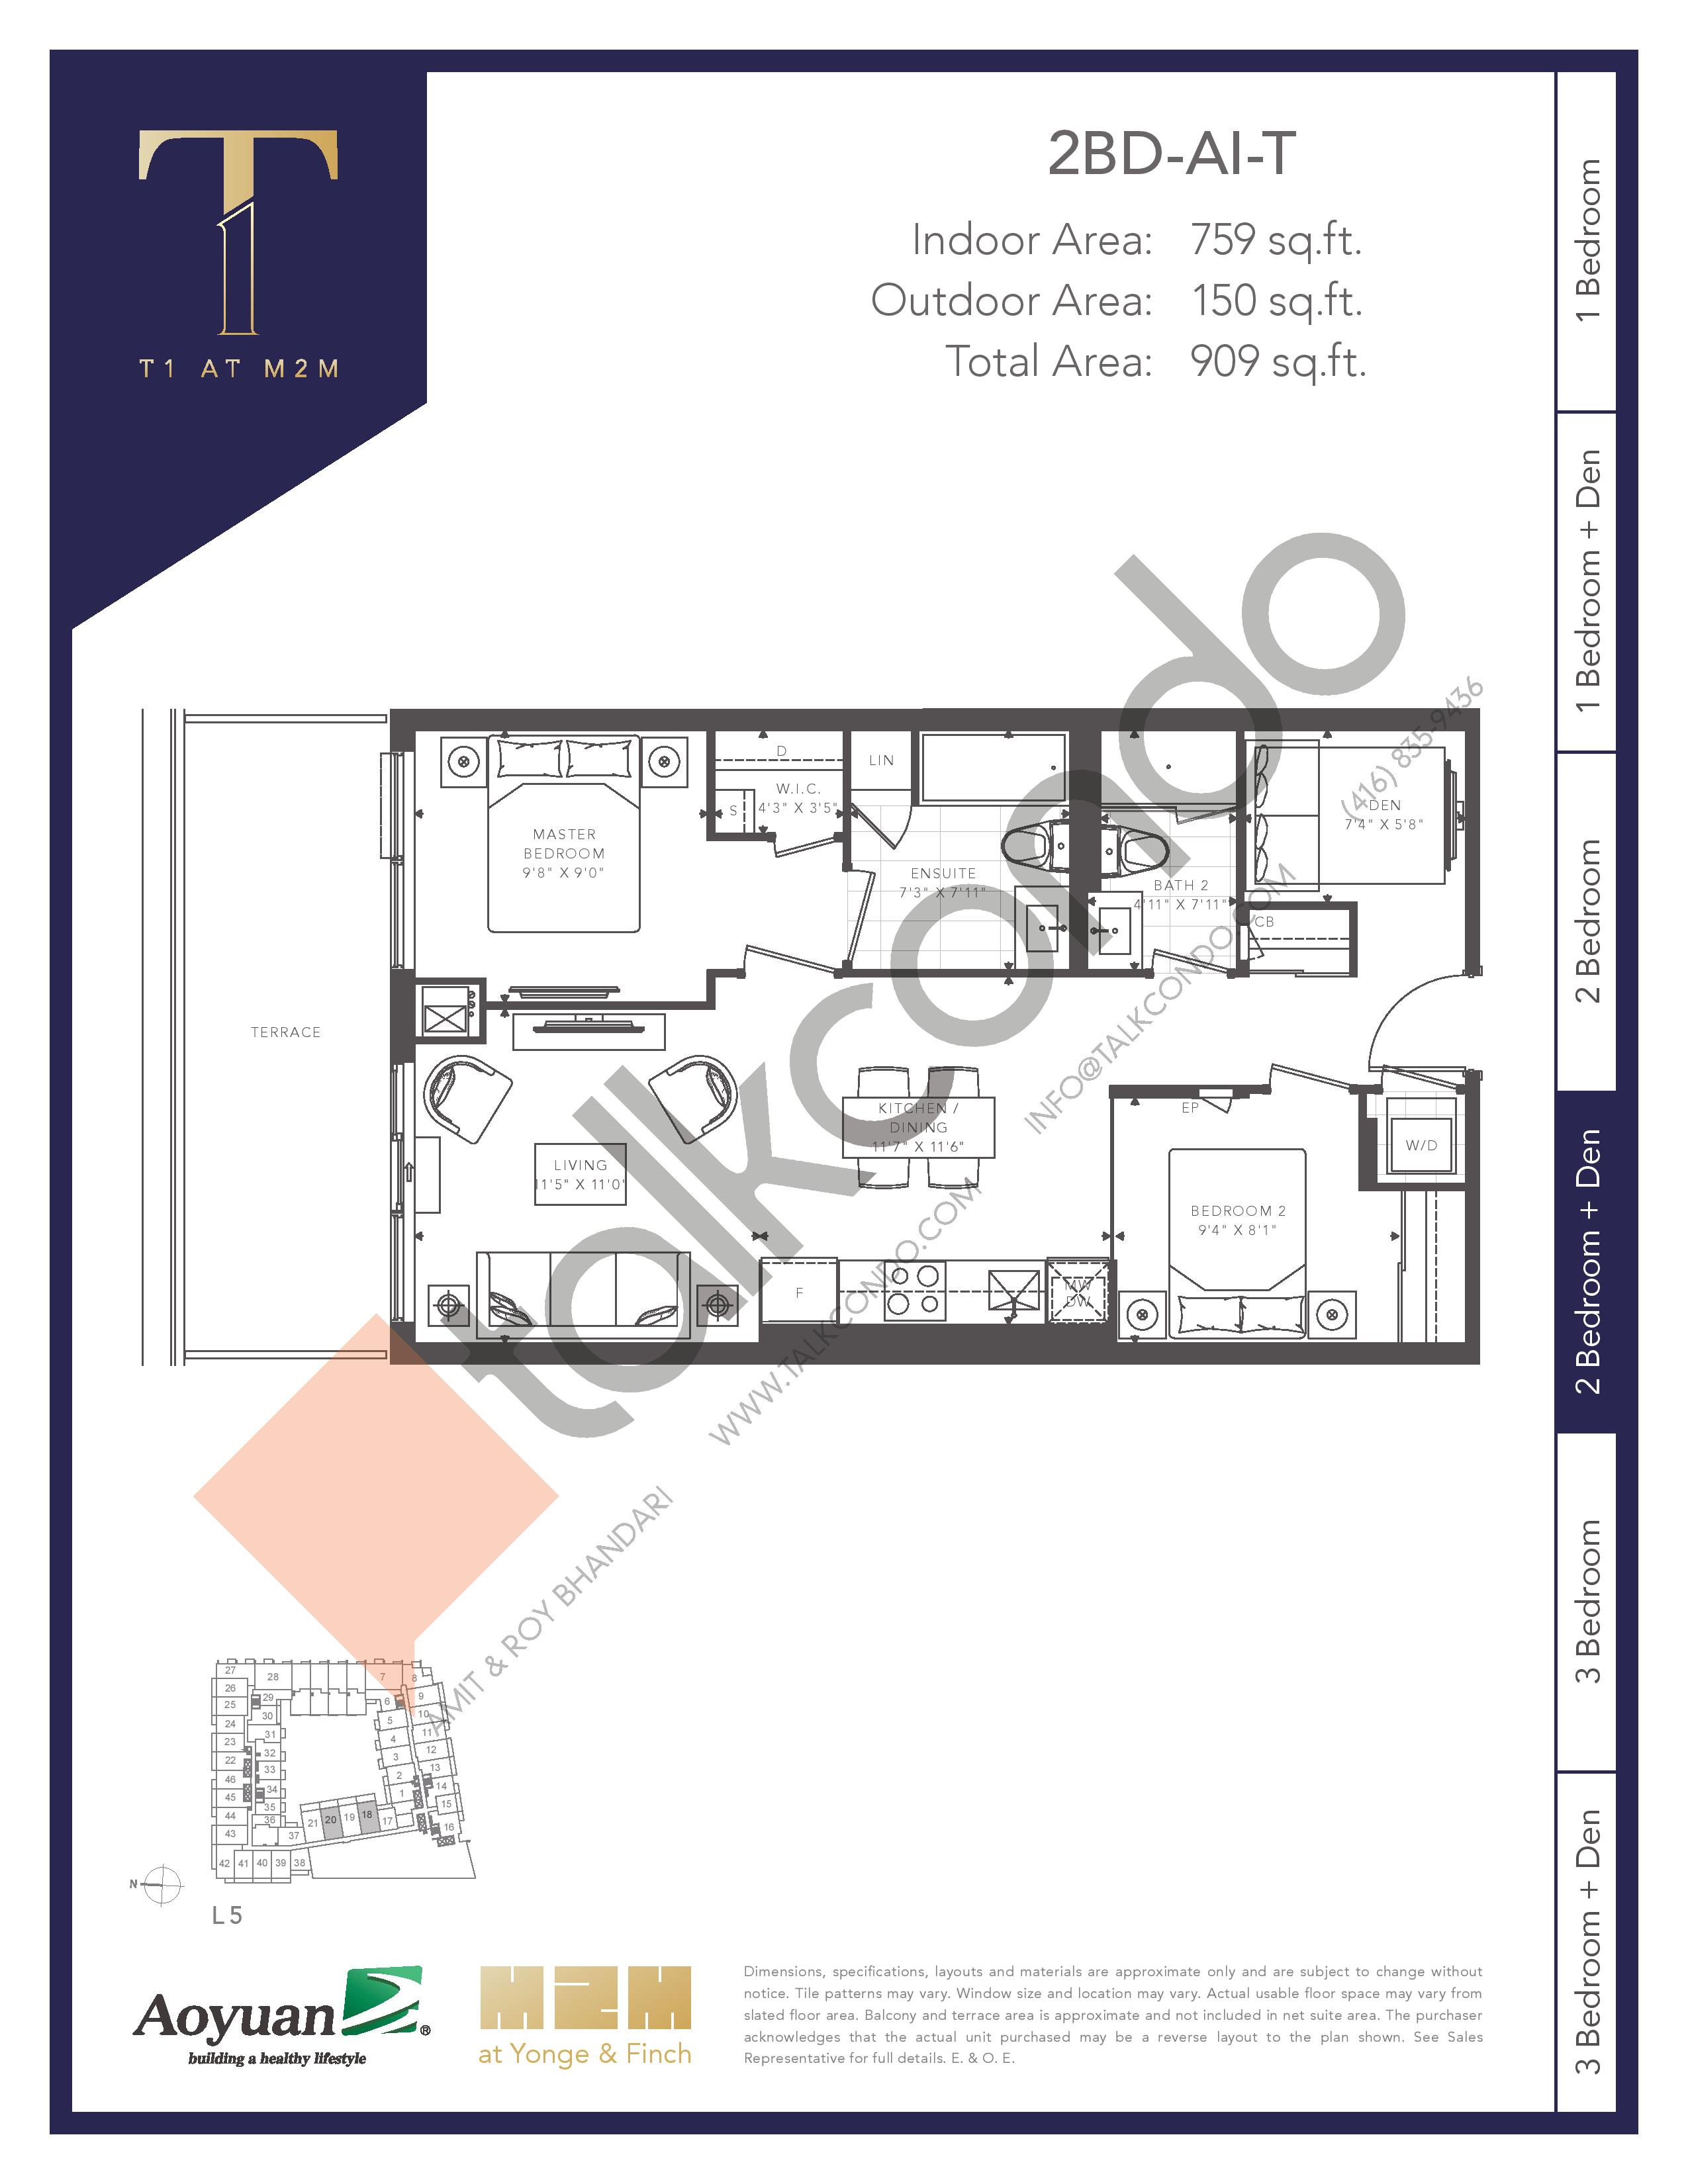 2BD-AI-T (Tower) Floor Plan at T1 at M2M Condos - 759 sq.ft